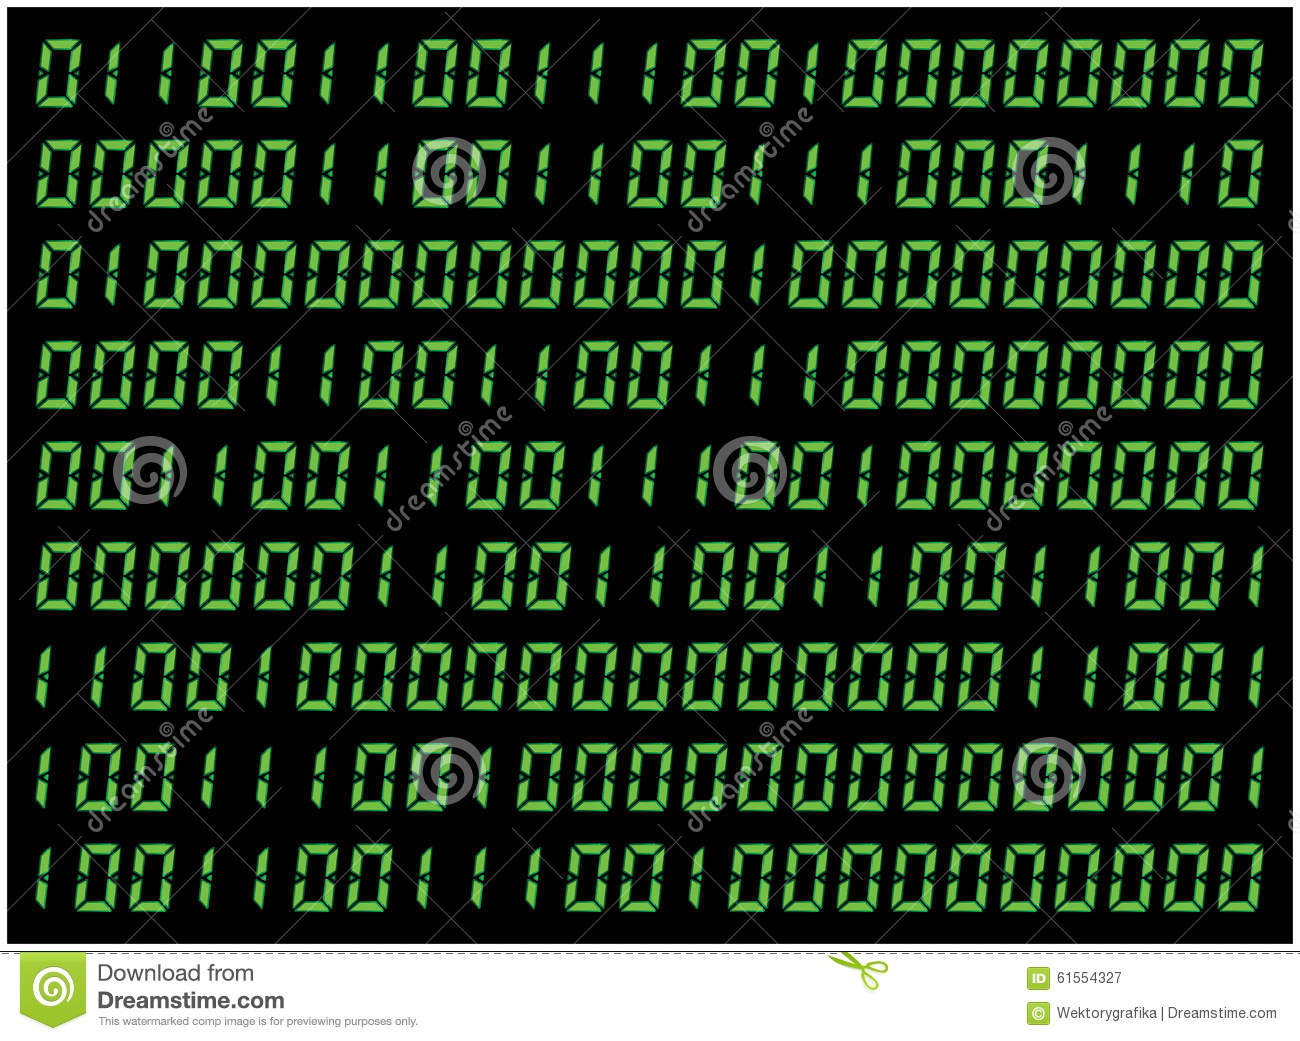 how to solve binary code